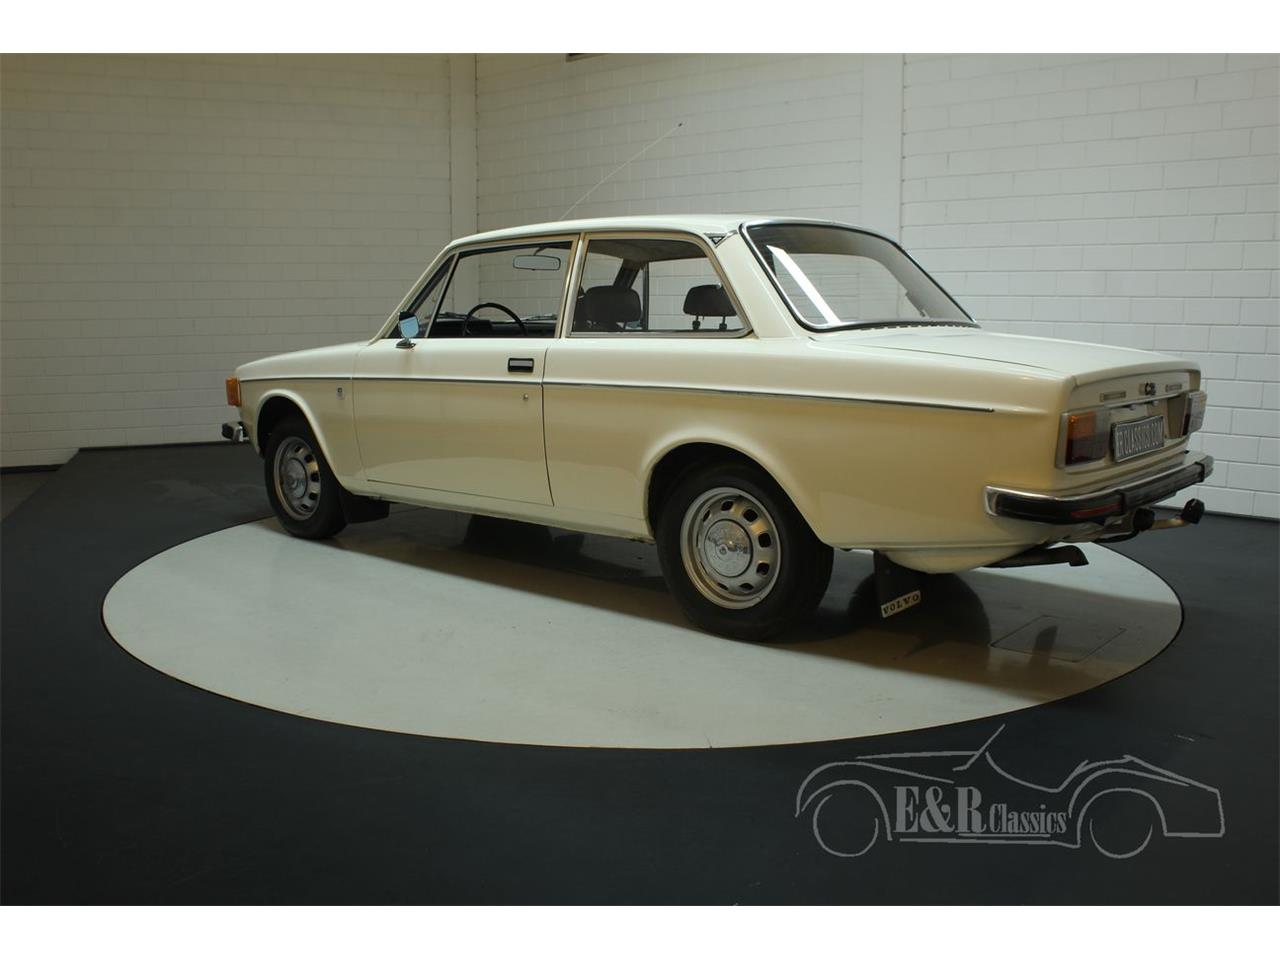 Large Picture of Classic '72 142 located in Waalwijk noord brabant - $13,400.00 - Q3GJ